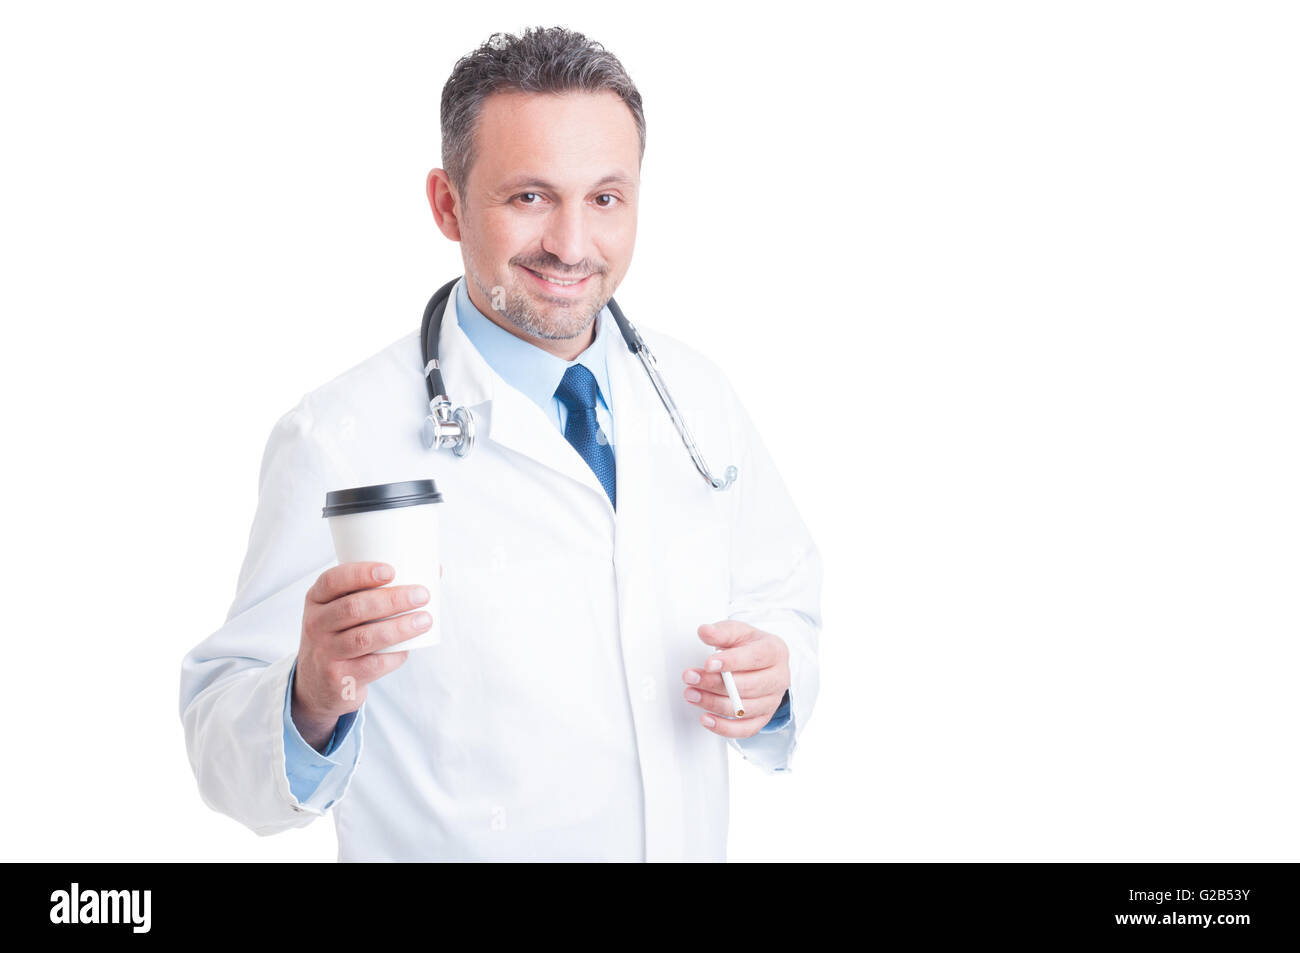 Hospital doctor having coffee and cigarette pause isolated on white background - Stock Image